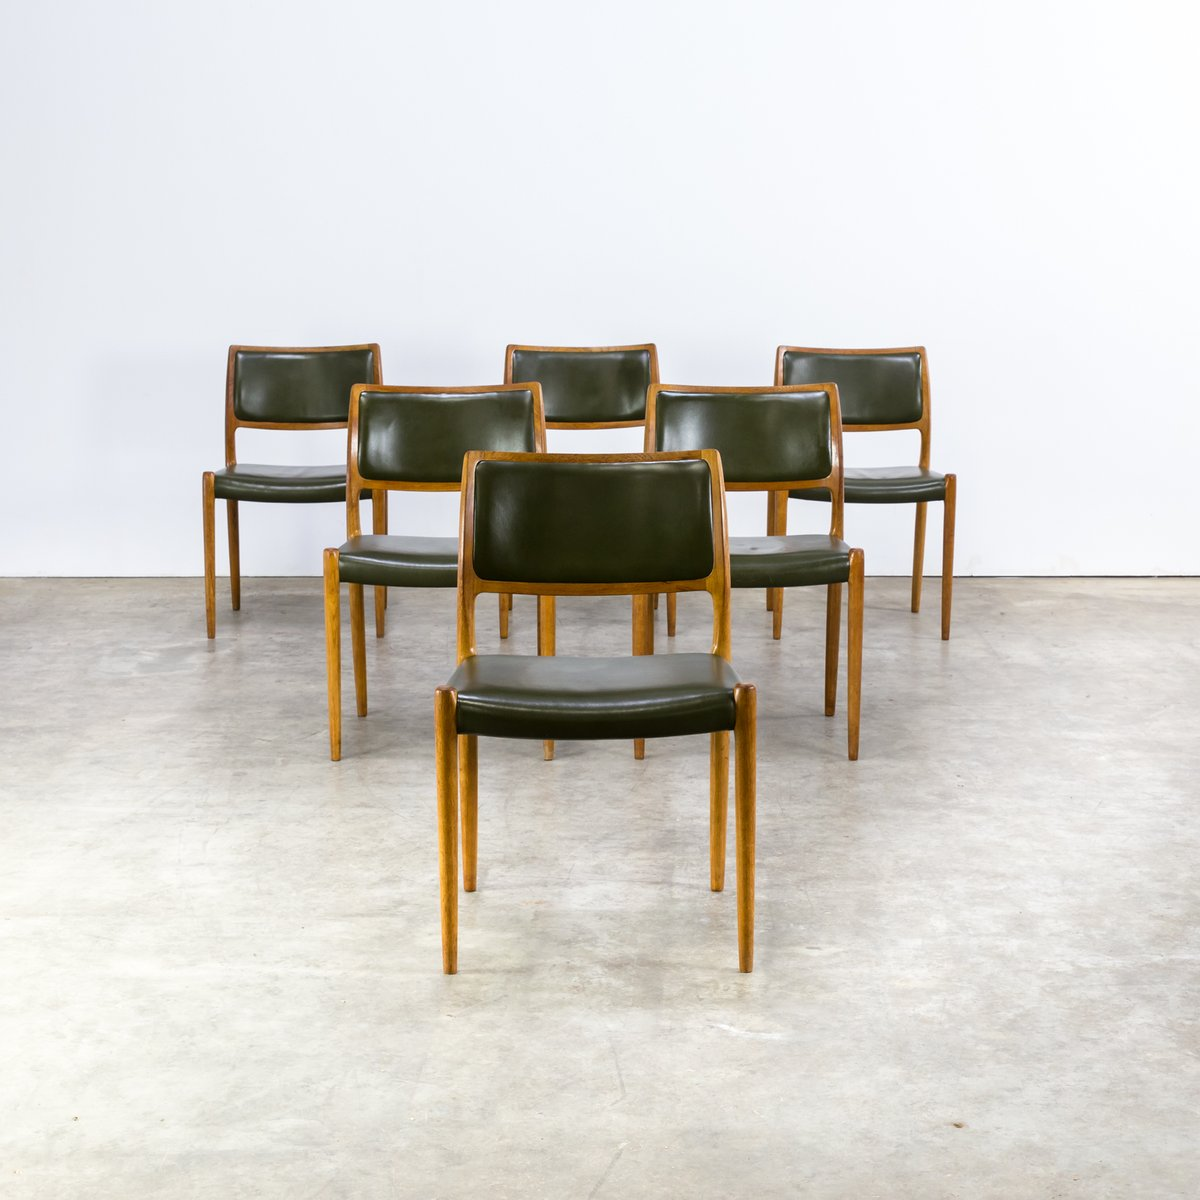 80 chairs by niels otto moller for j l m llers 1960s for 80s furniture for sale